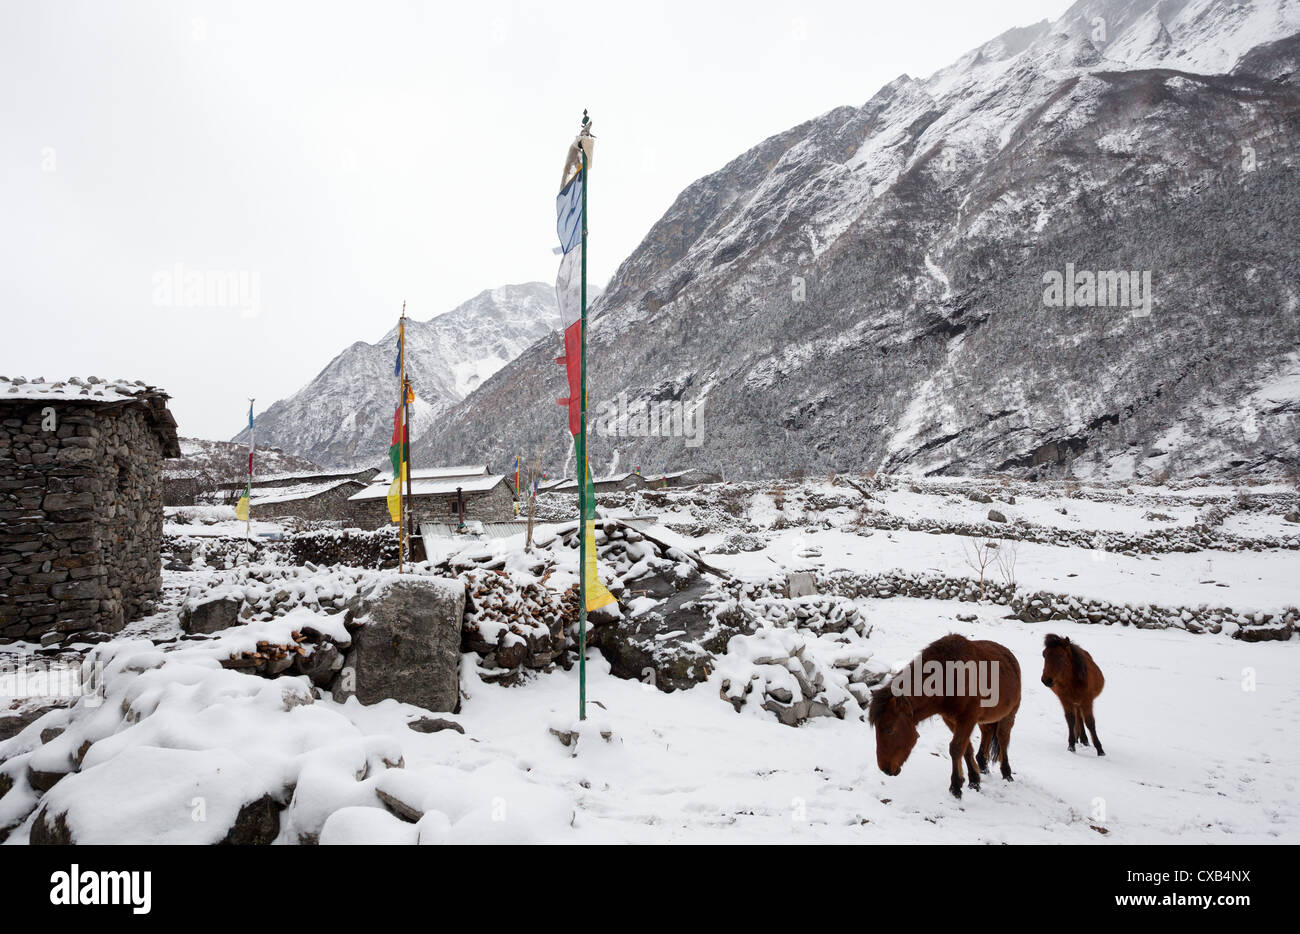 Mules standing next to Buddhist prayer flags in the snow, Langtang village, Nepal - Stock Image